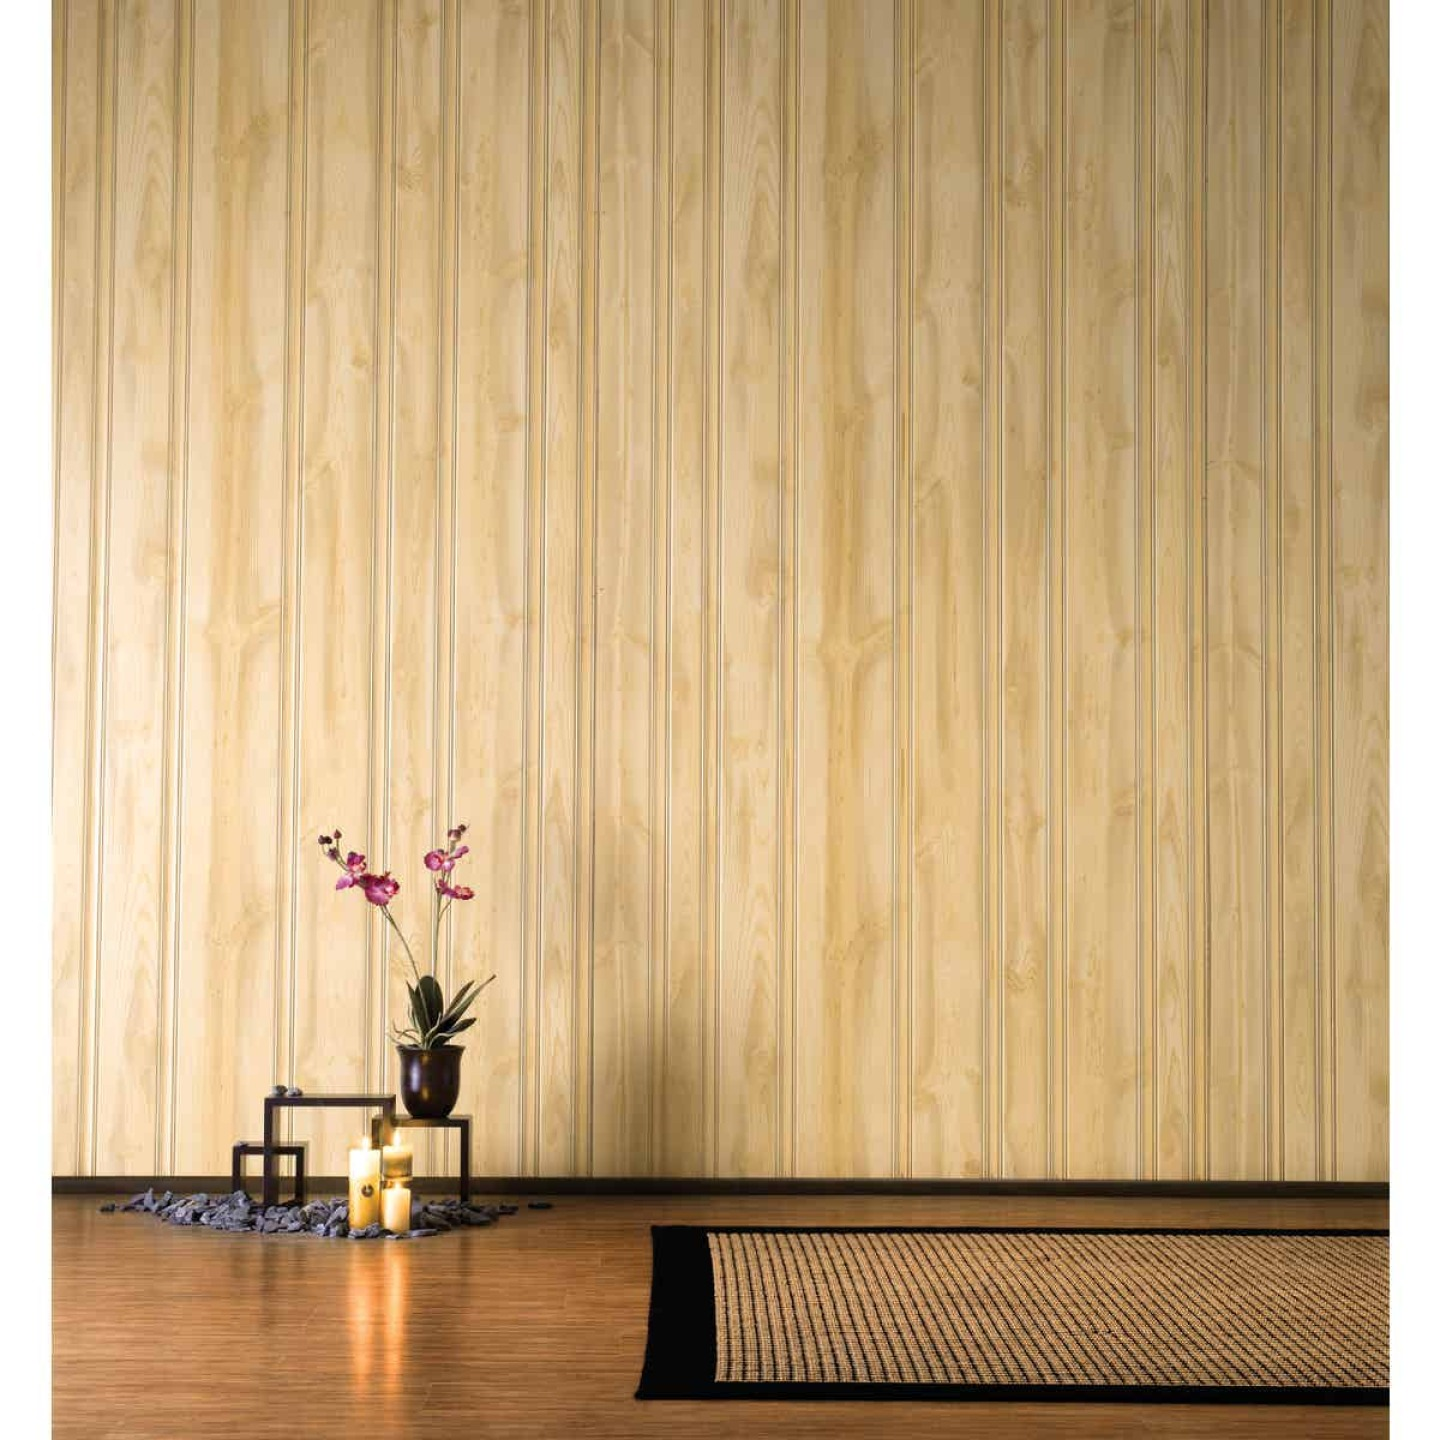 DPI 4 Ft. x 8 Ft. x 3/16 In. Honey Pine Woodgrain Wall Paneling Image 3